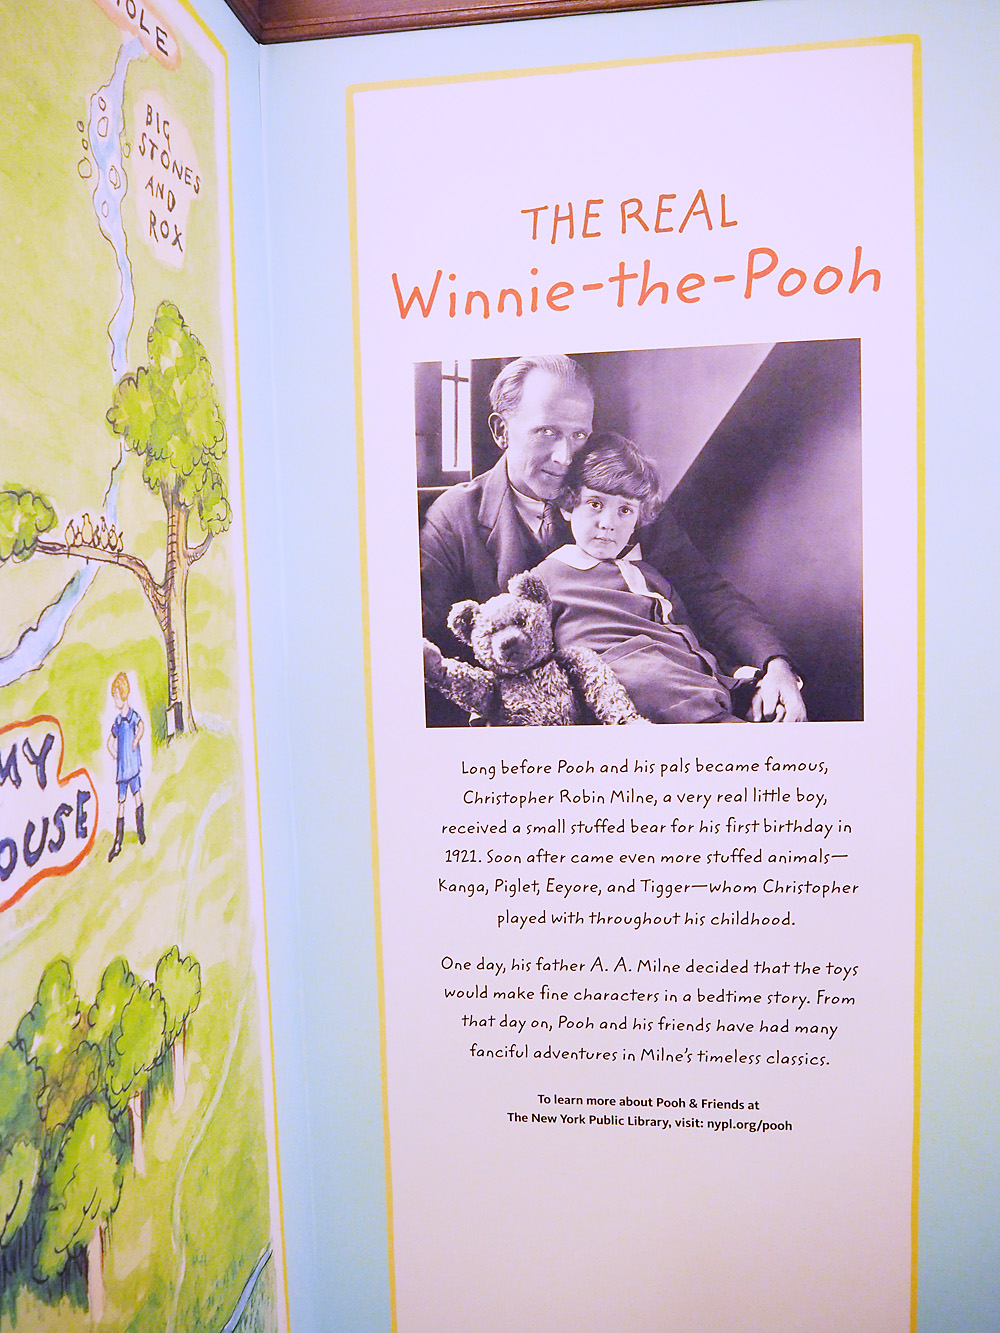 Original Winnie the Pooh at the New York Public Library